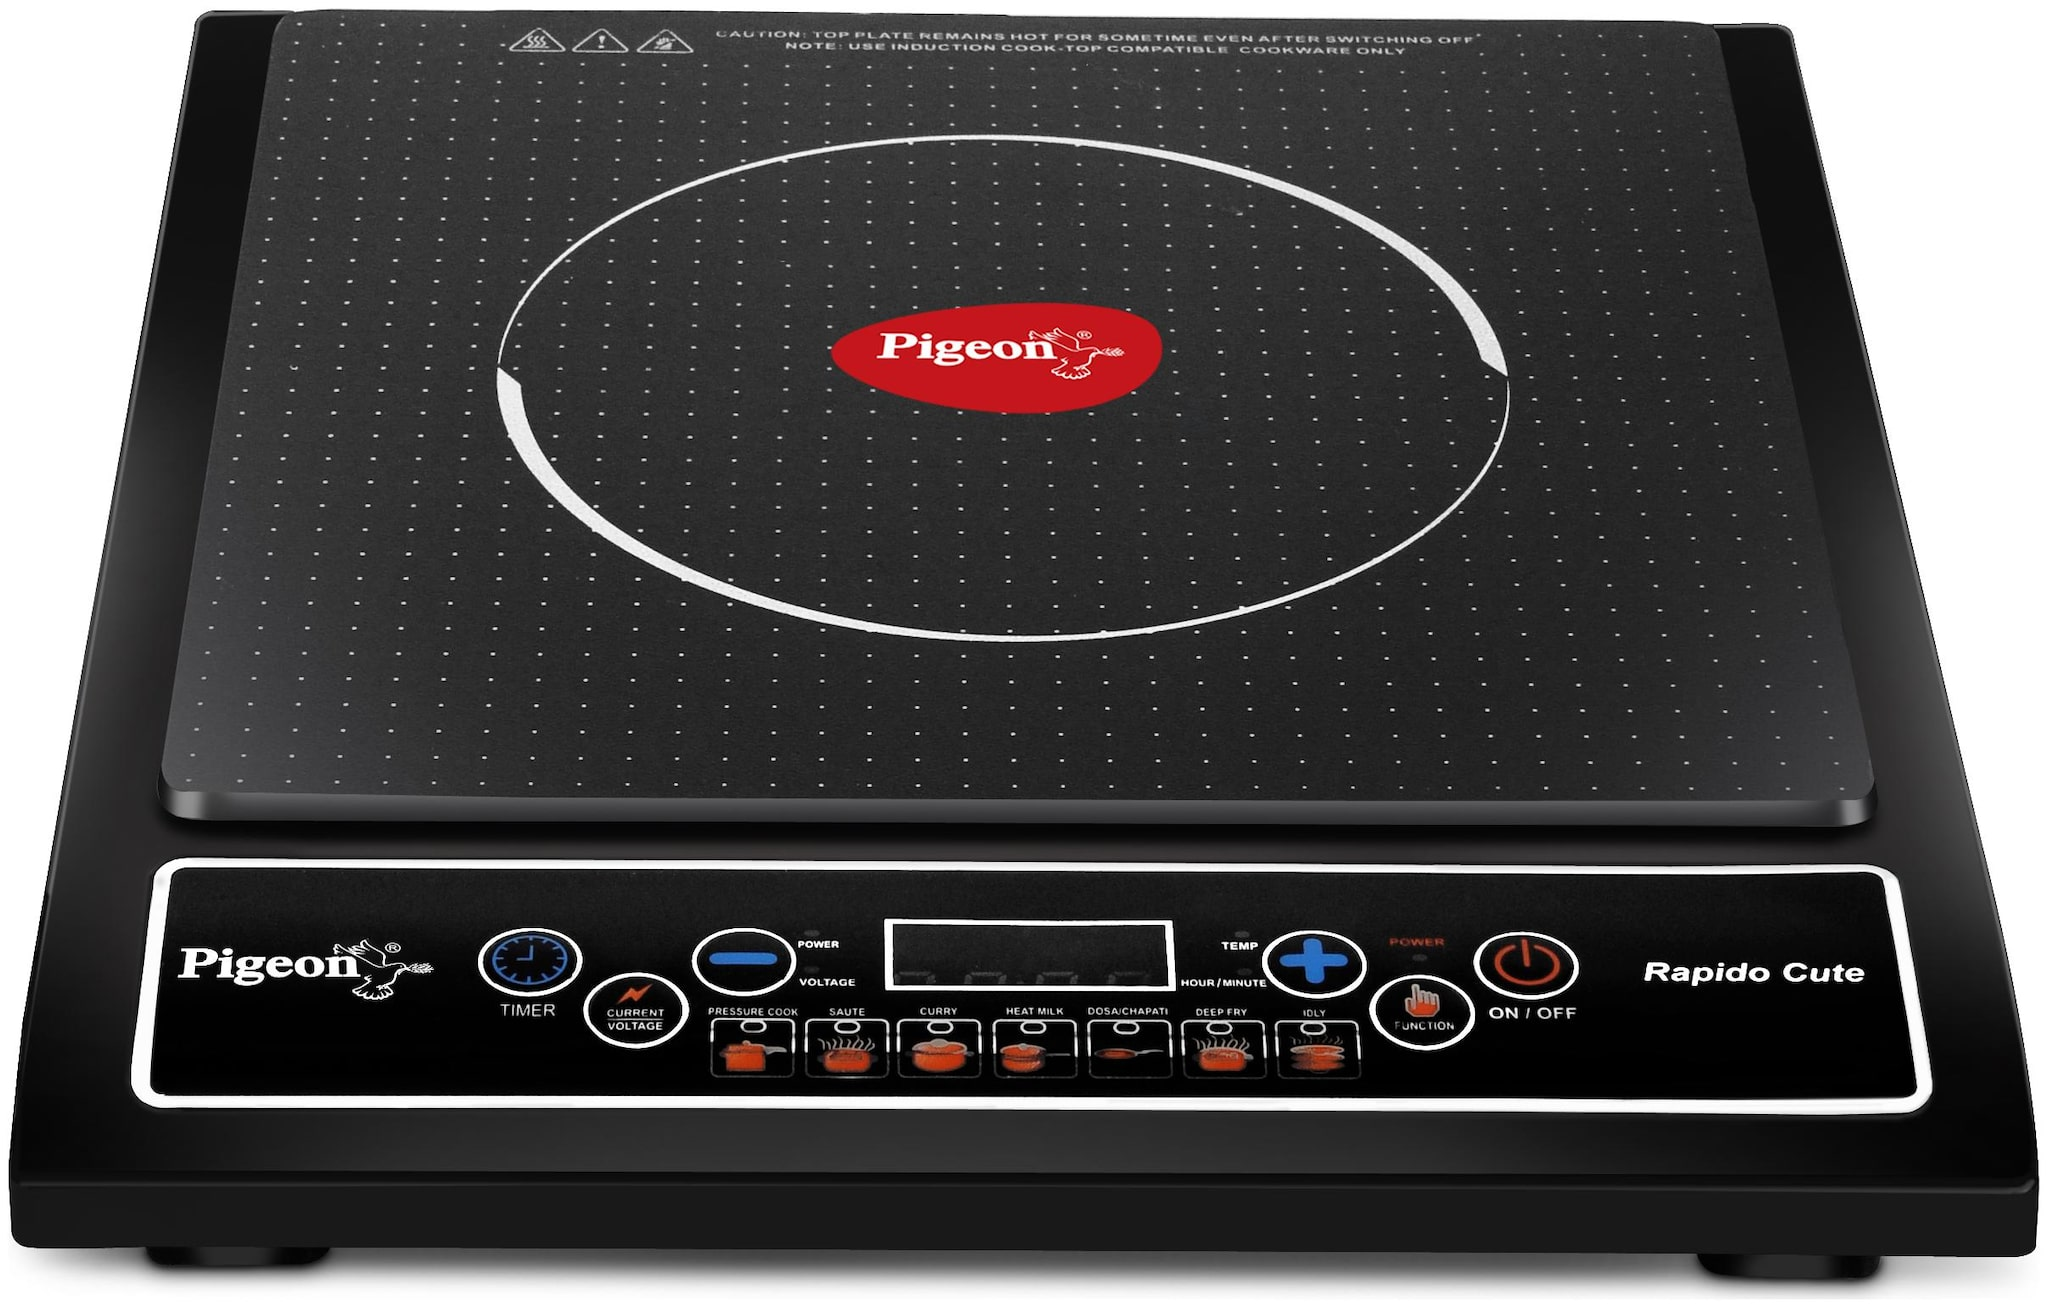 Pigeon Rapido Cute 1800 W Induction Cooktop (Black)